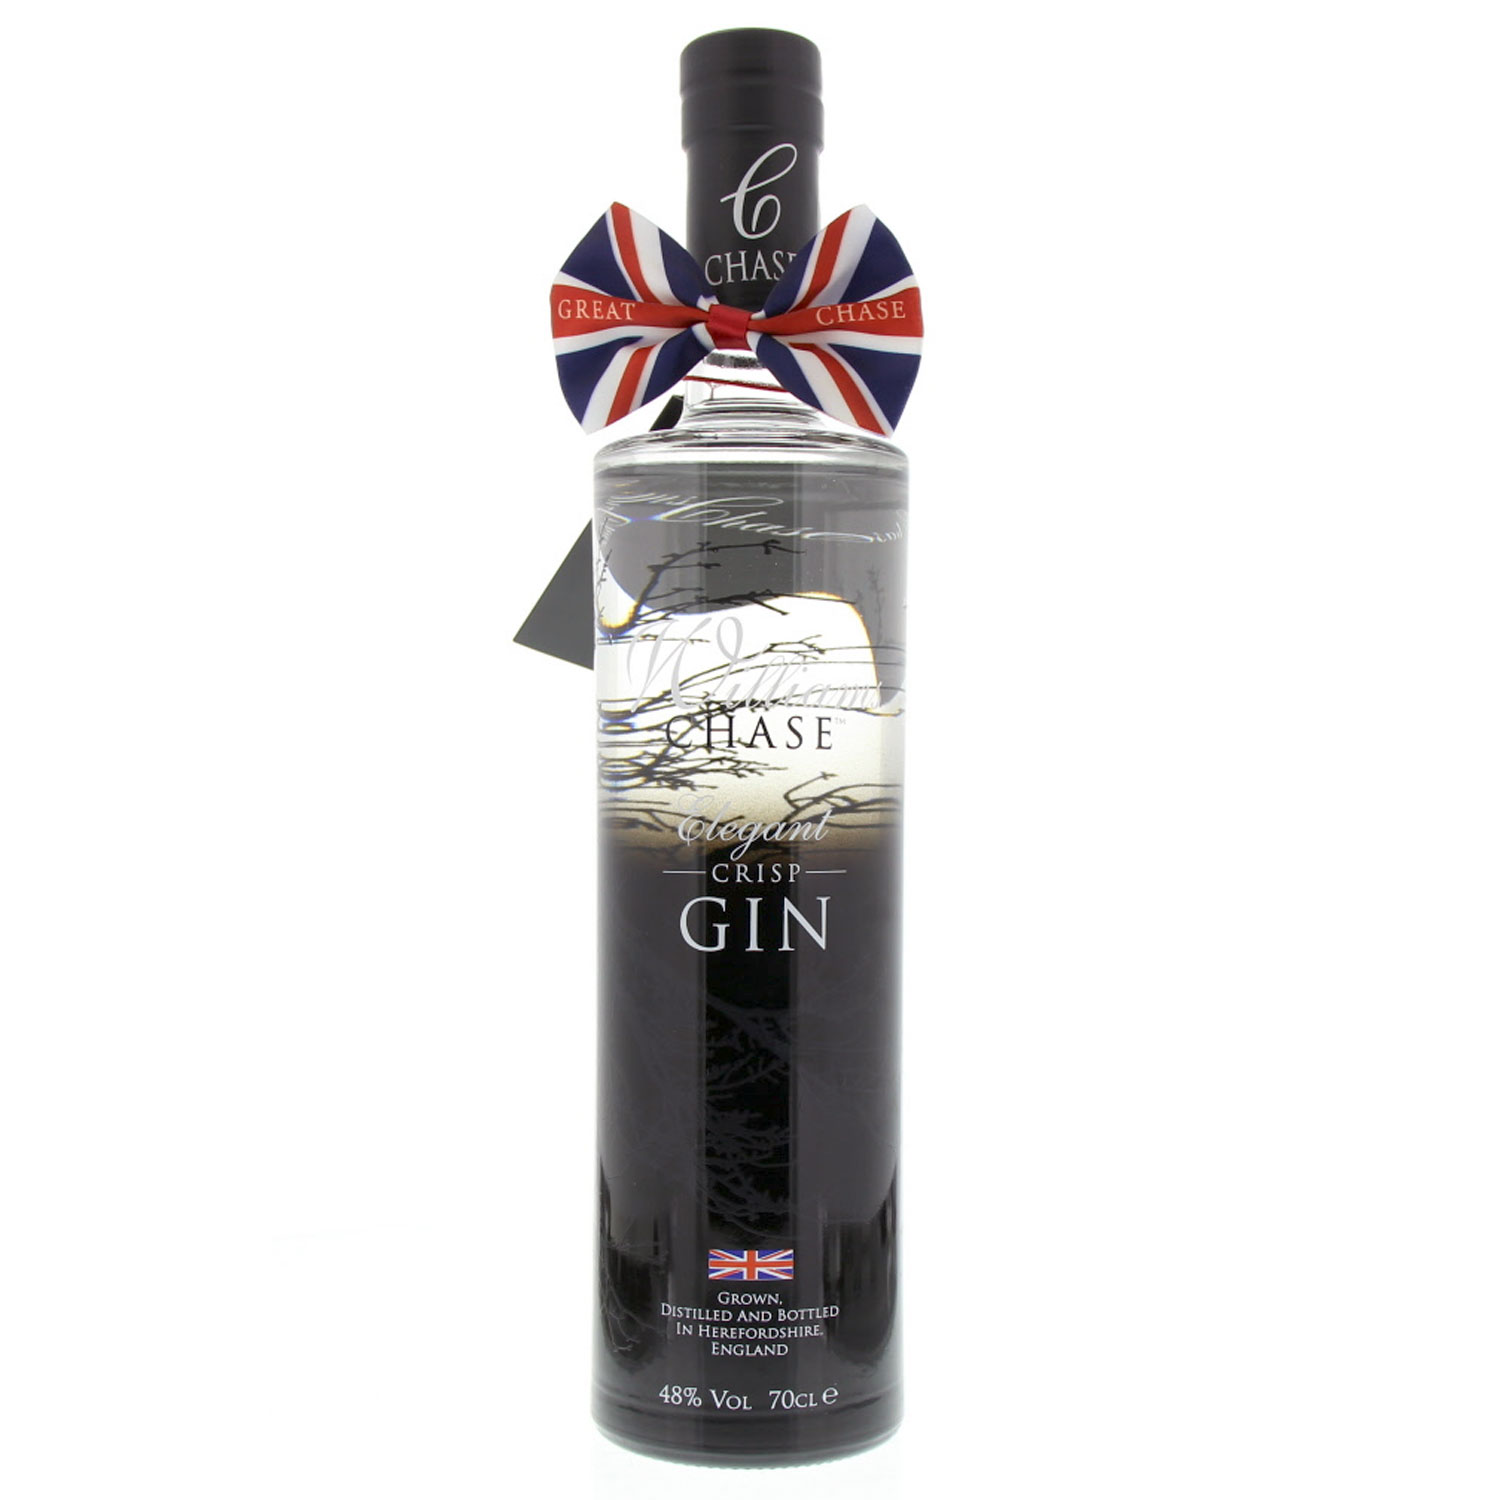 Gin - William Chase - Elegant - Angleterre - 48° - 70 cl